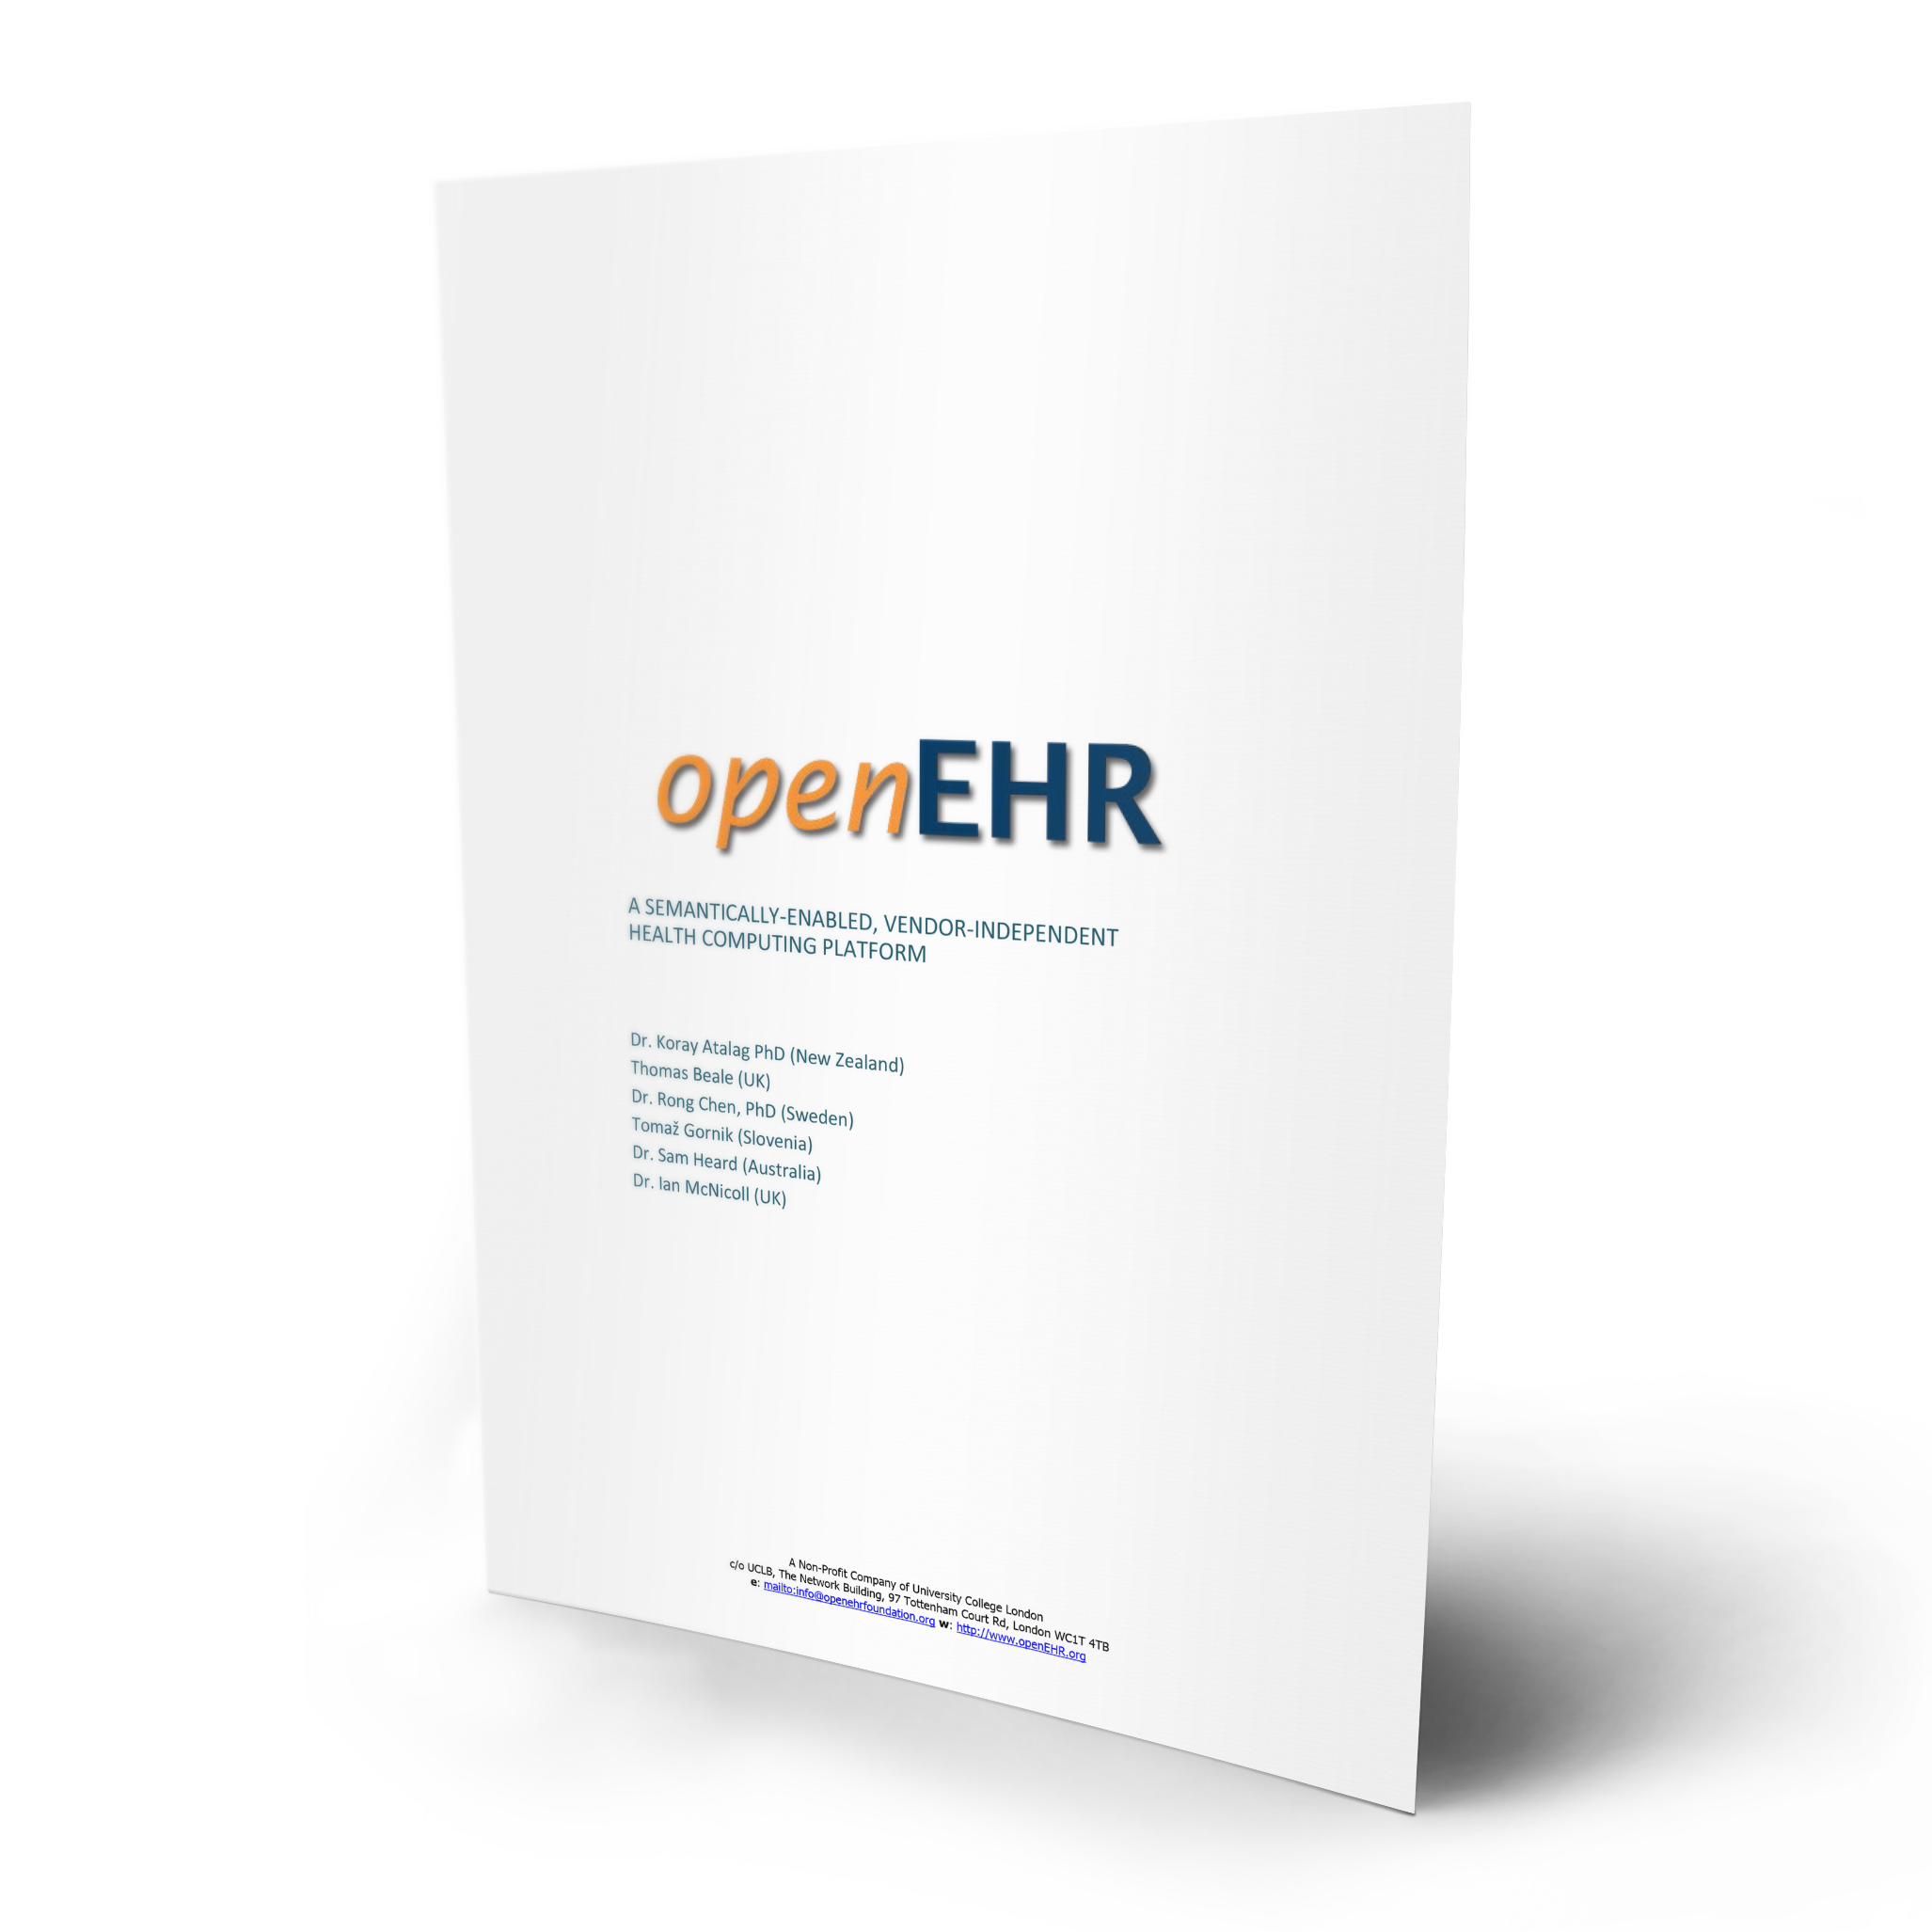 Download your free openEHR White Paper